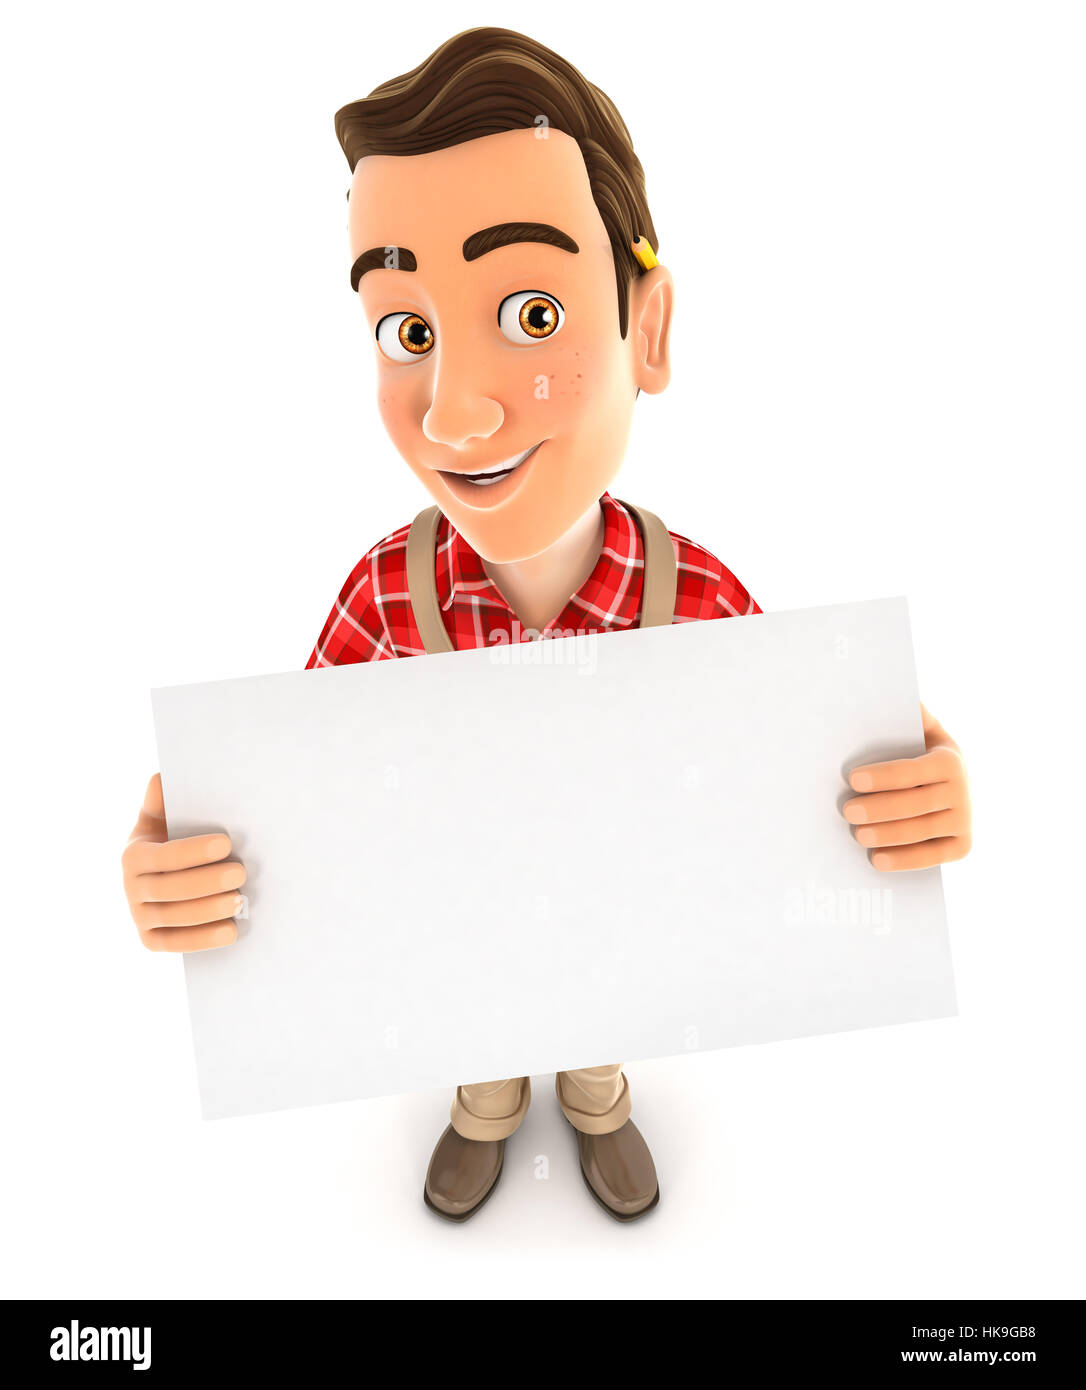 3d handyman holding a billboard, illustration with isolated white background Stock Photo